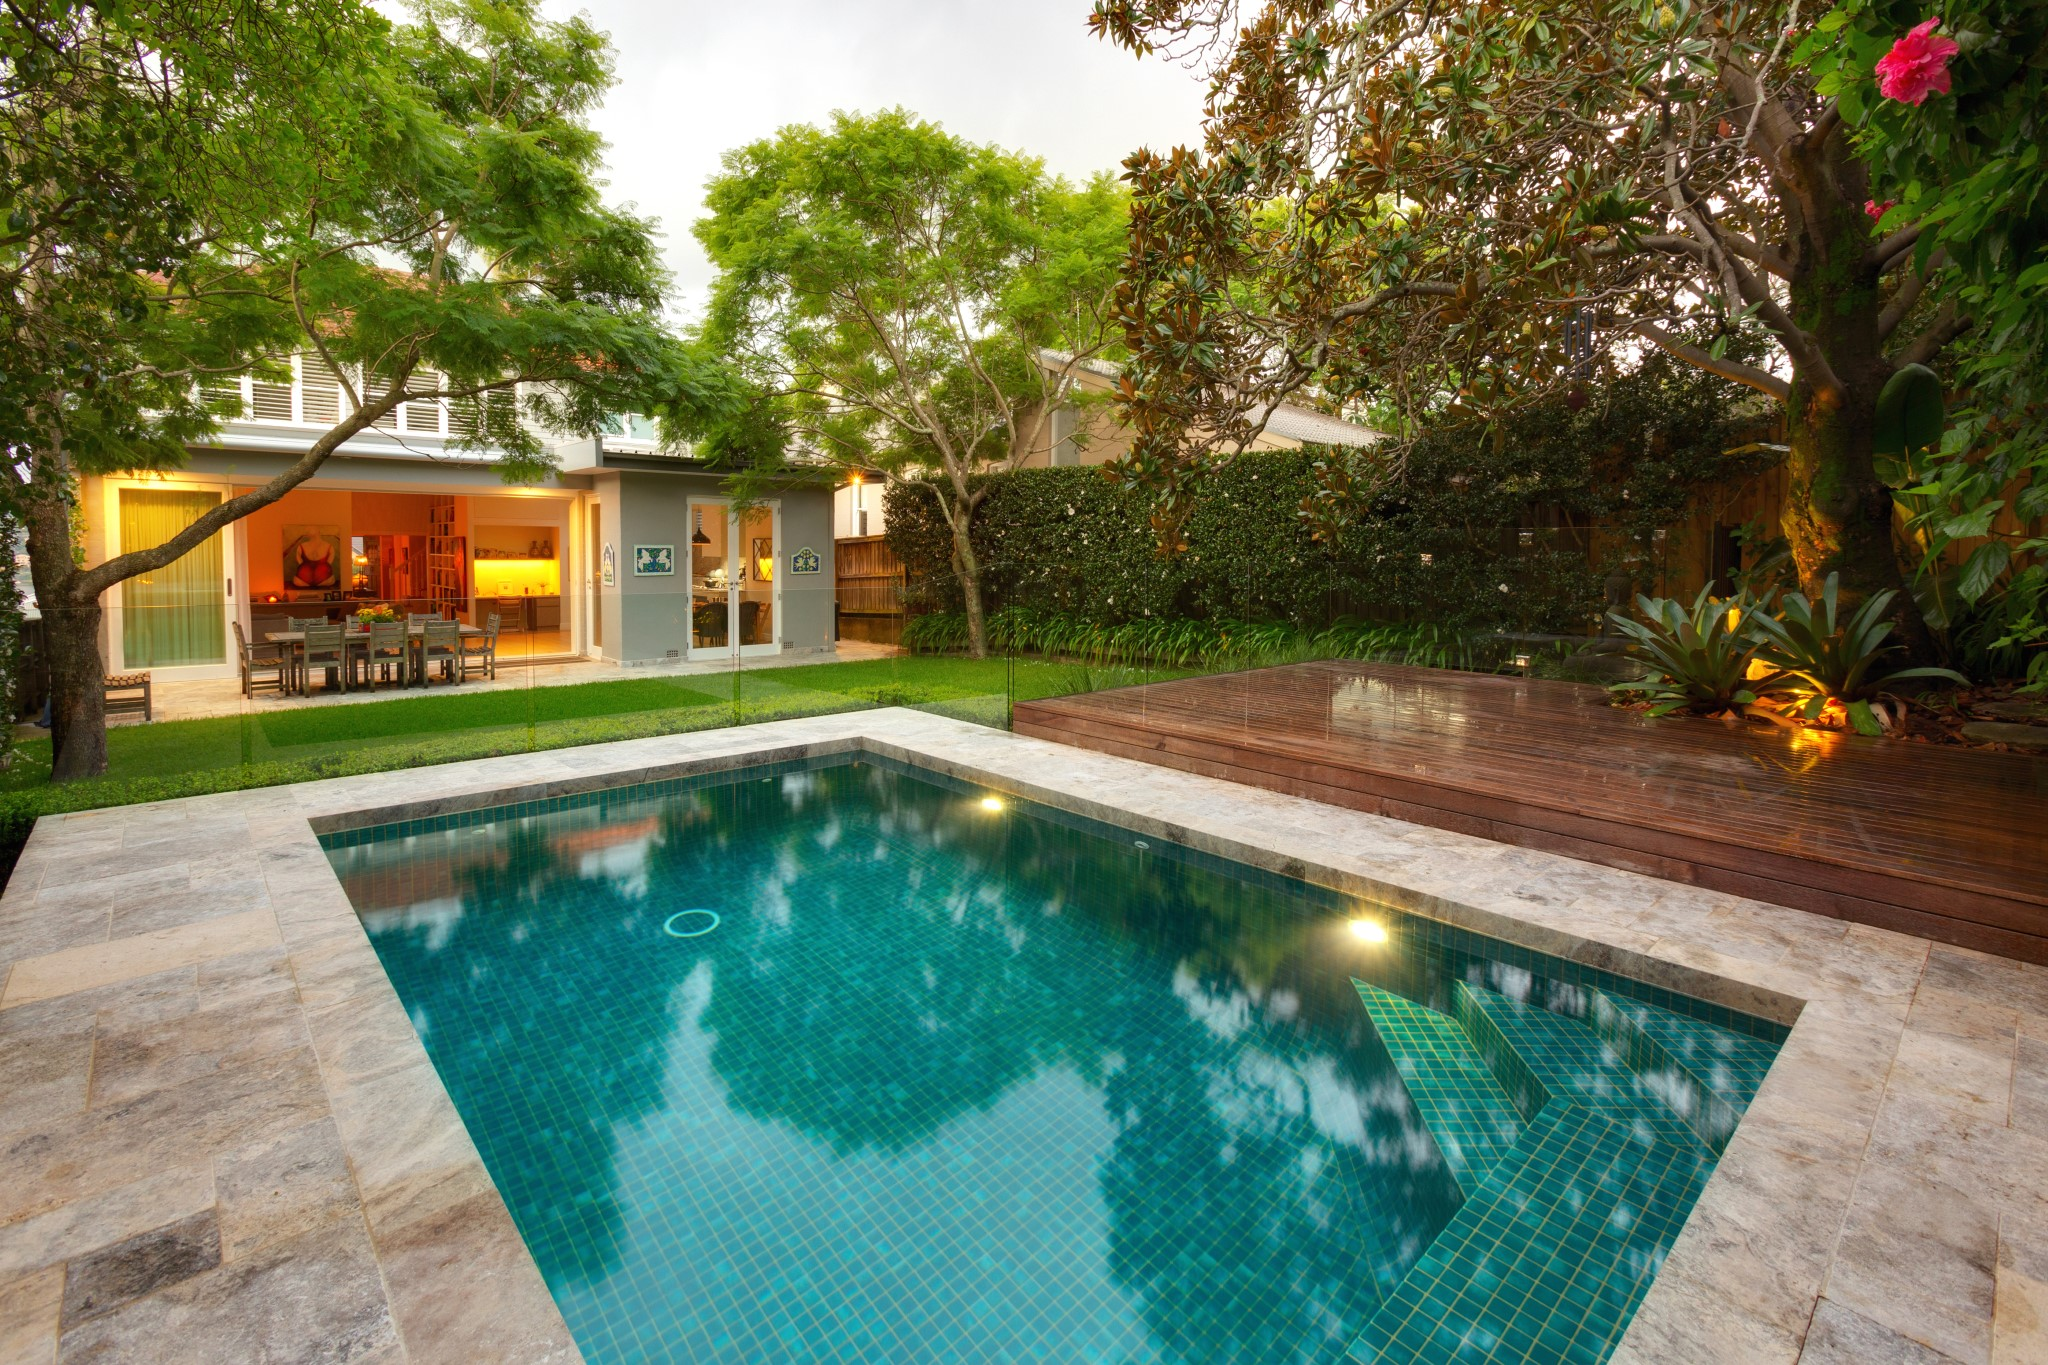 Classic design pool and cozy house